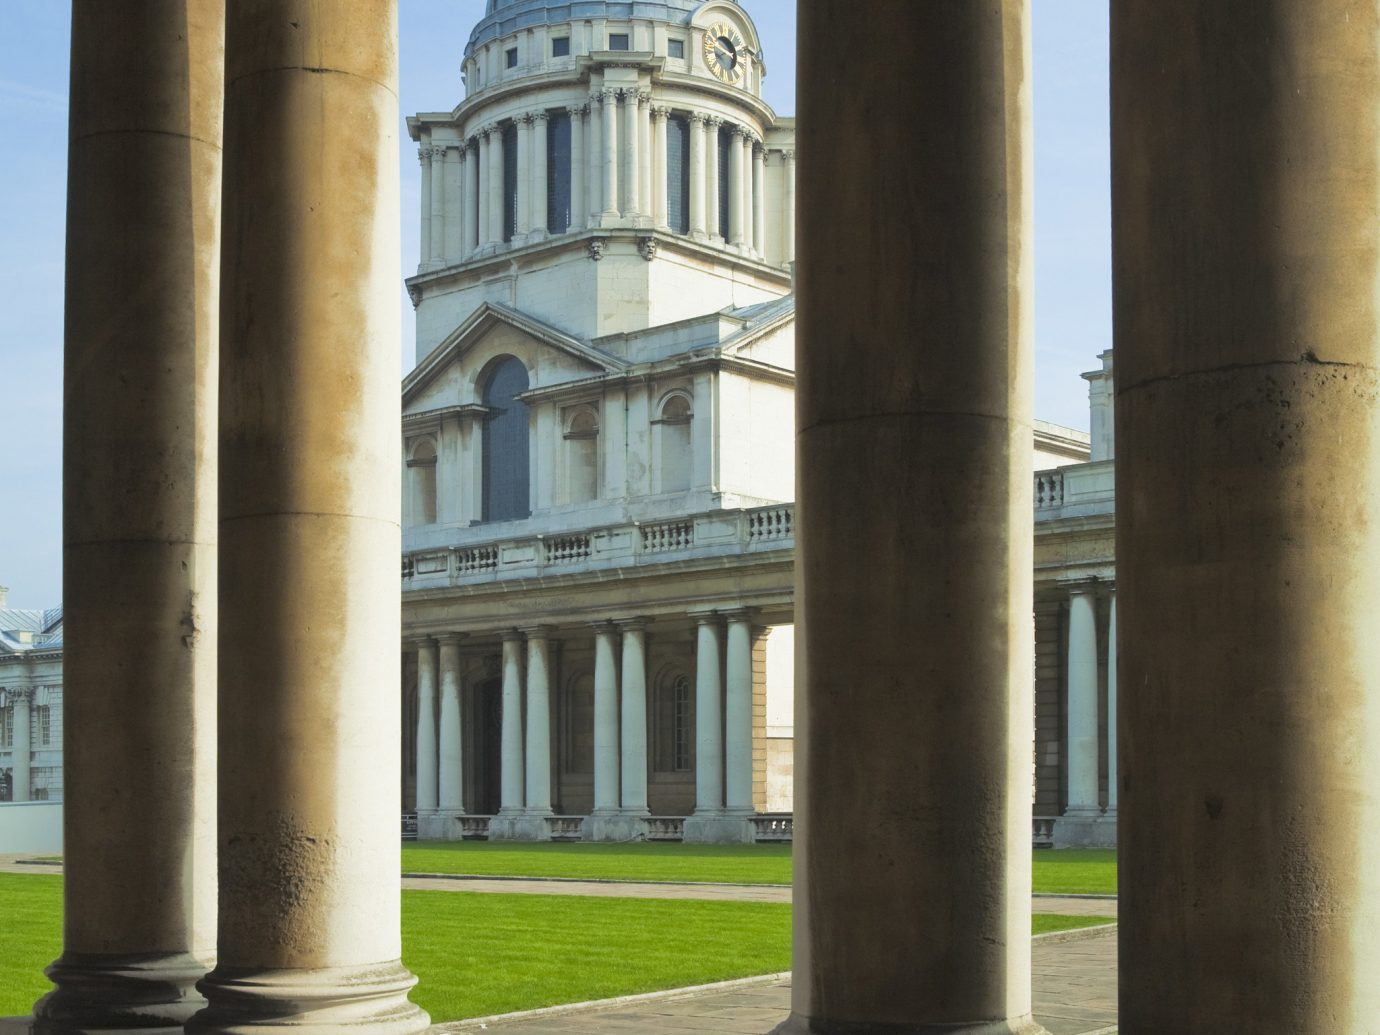 Budget building outdoor structure column landmark pole Architecture ancient history arch monument place of worship post temple ancient roman architecture stone